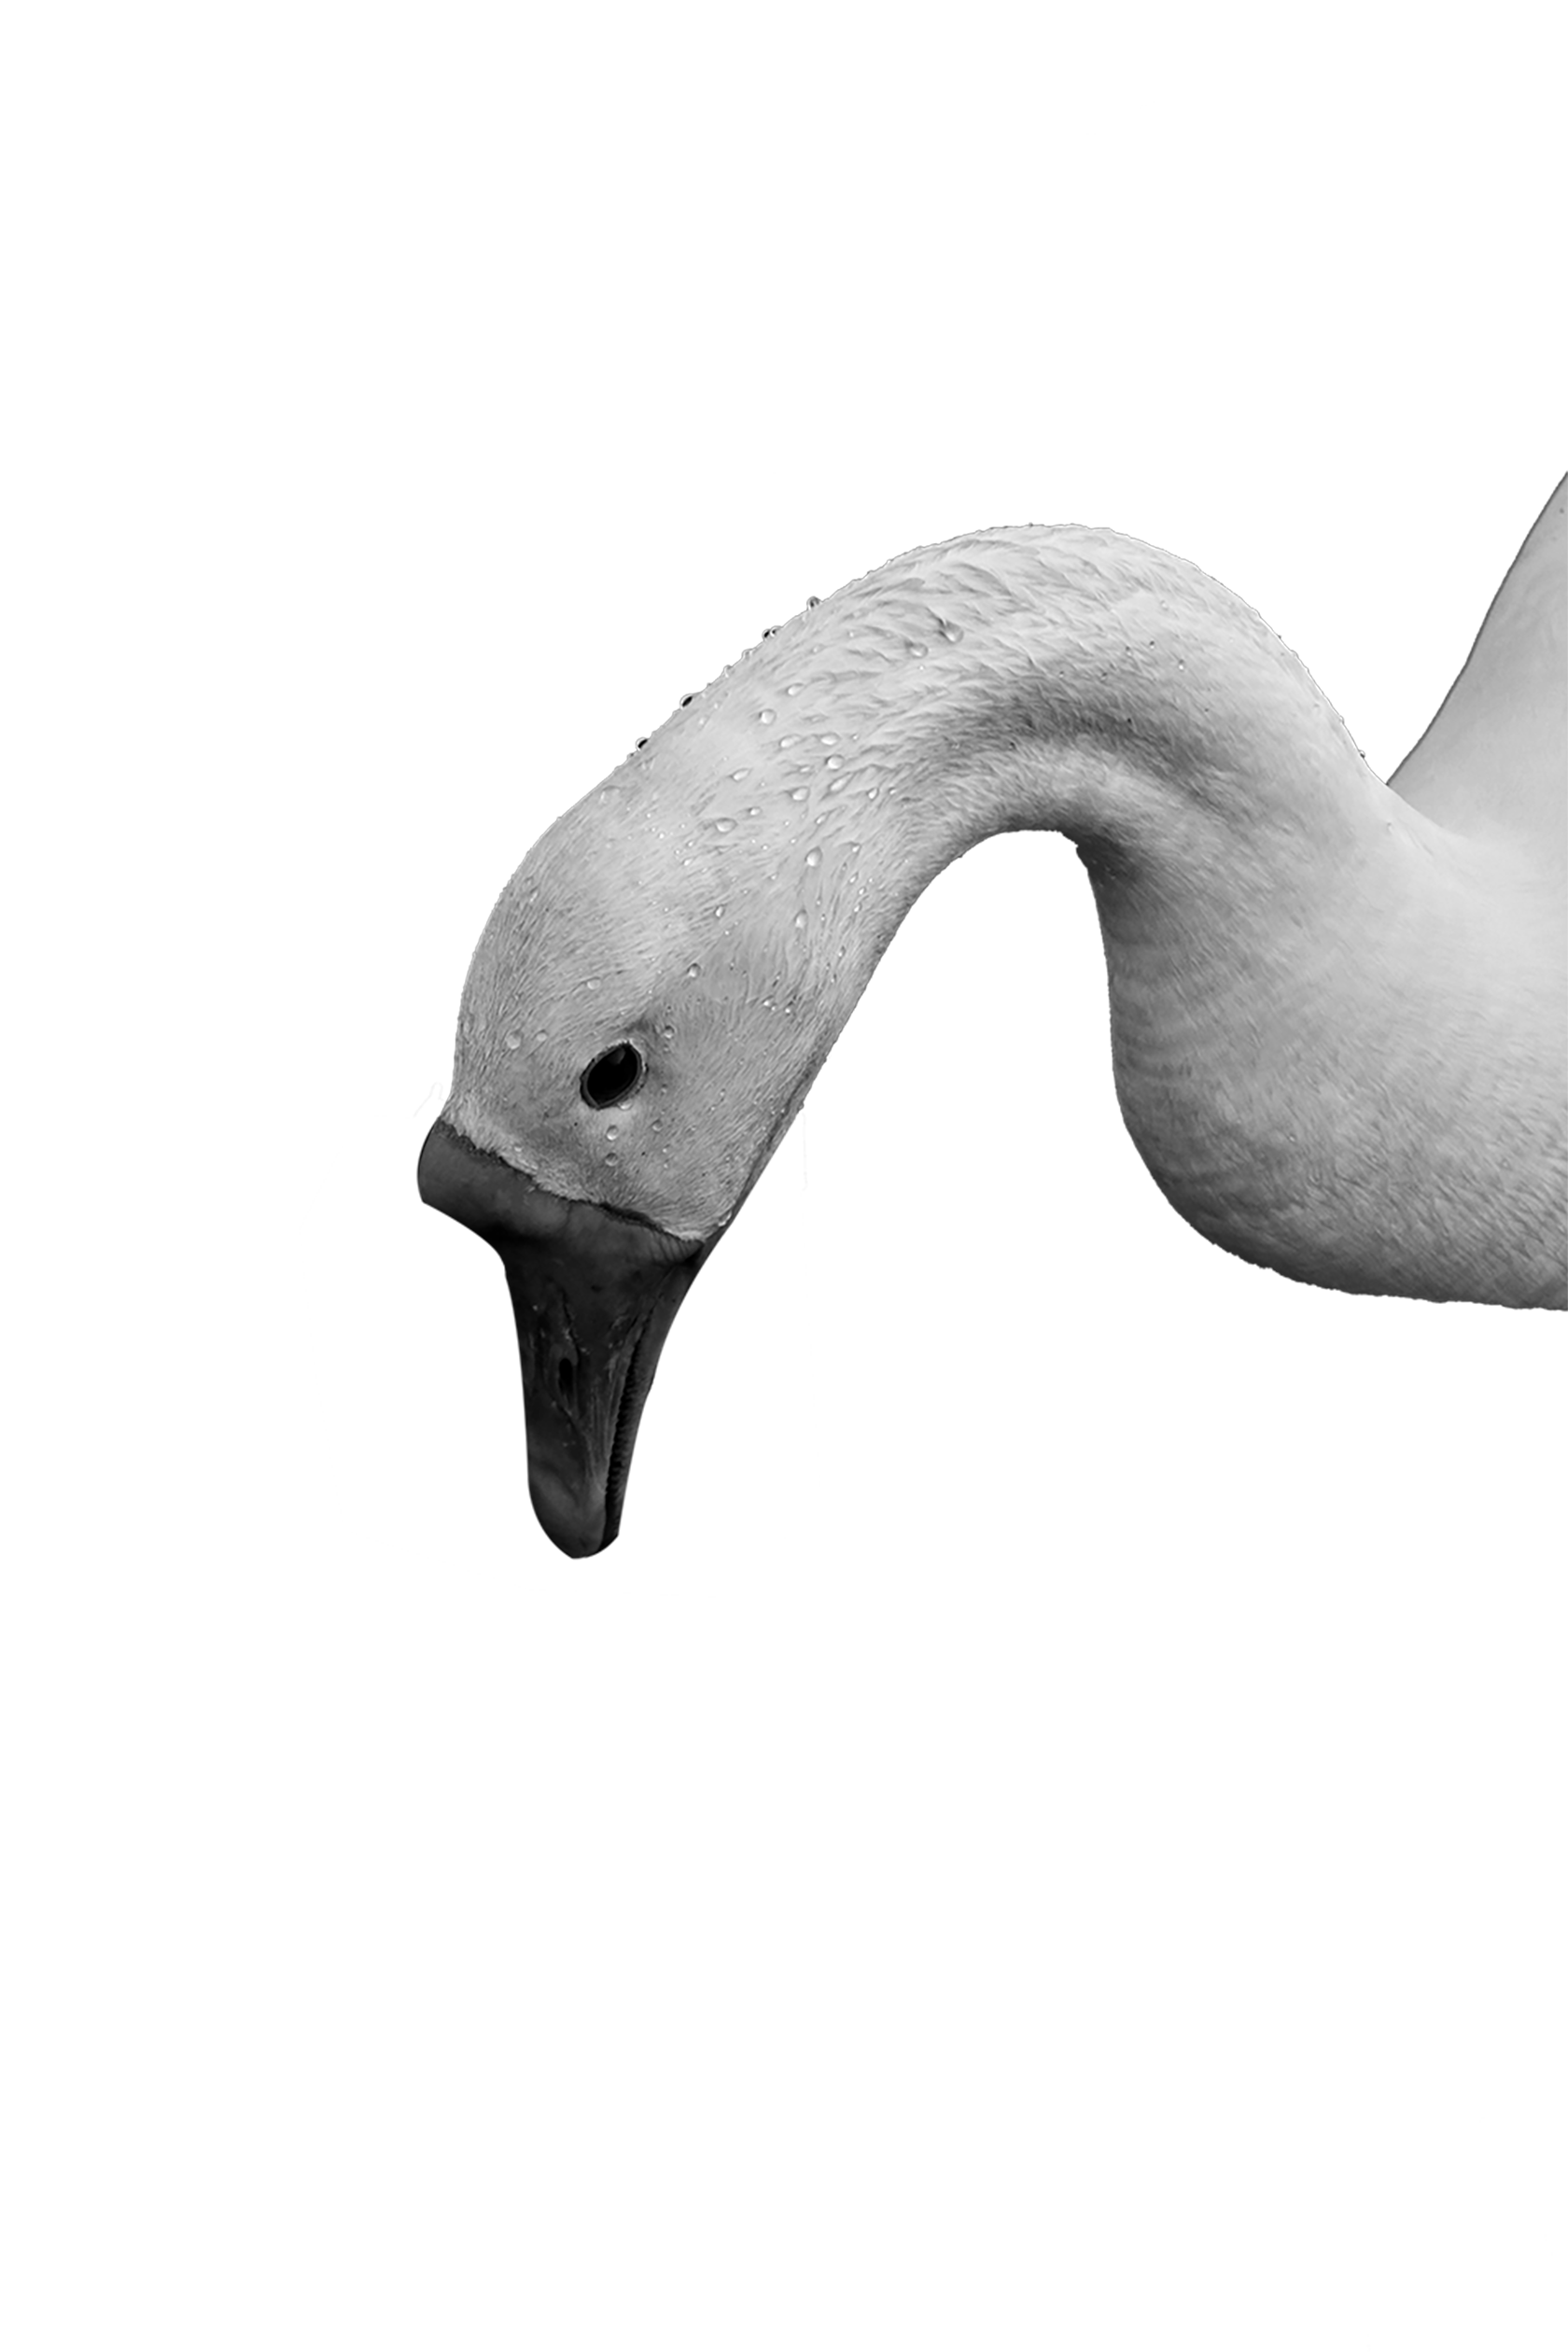 Head of Swan transparent background PNG